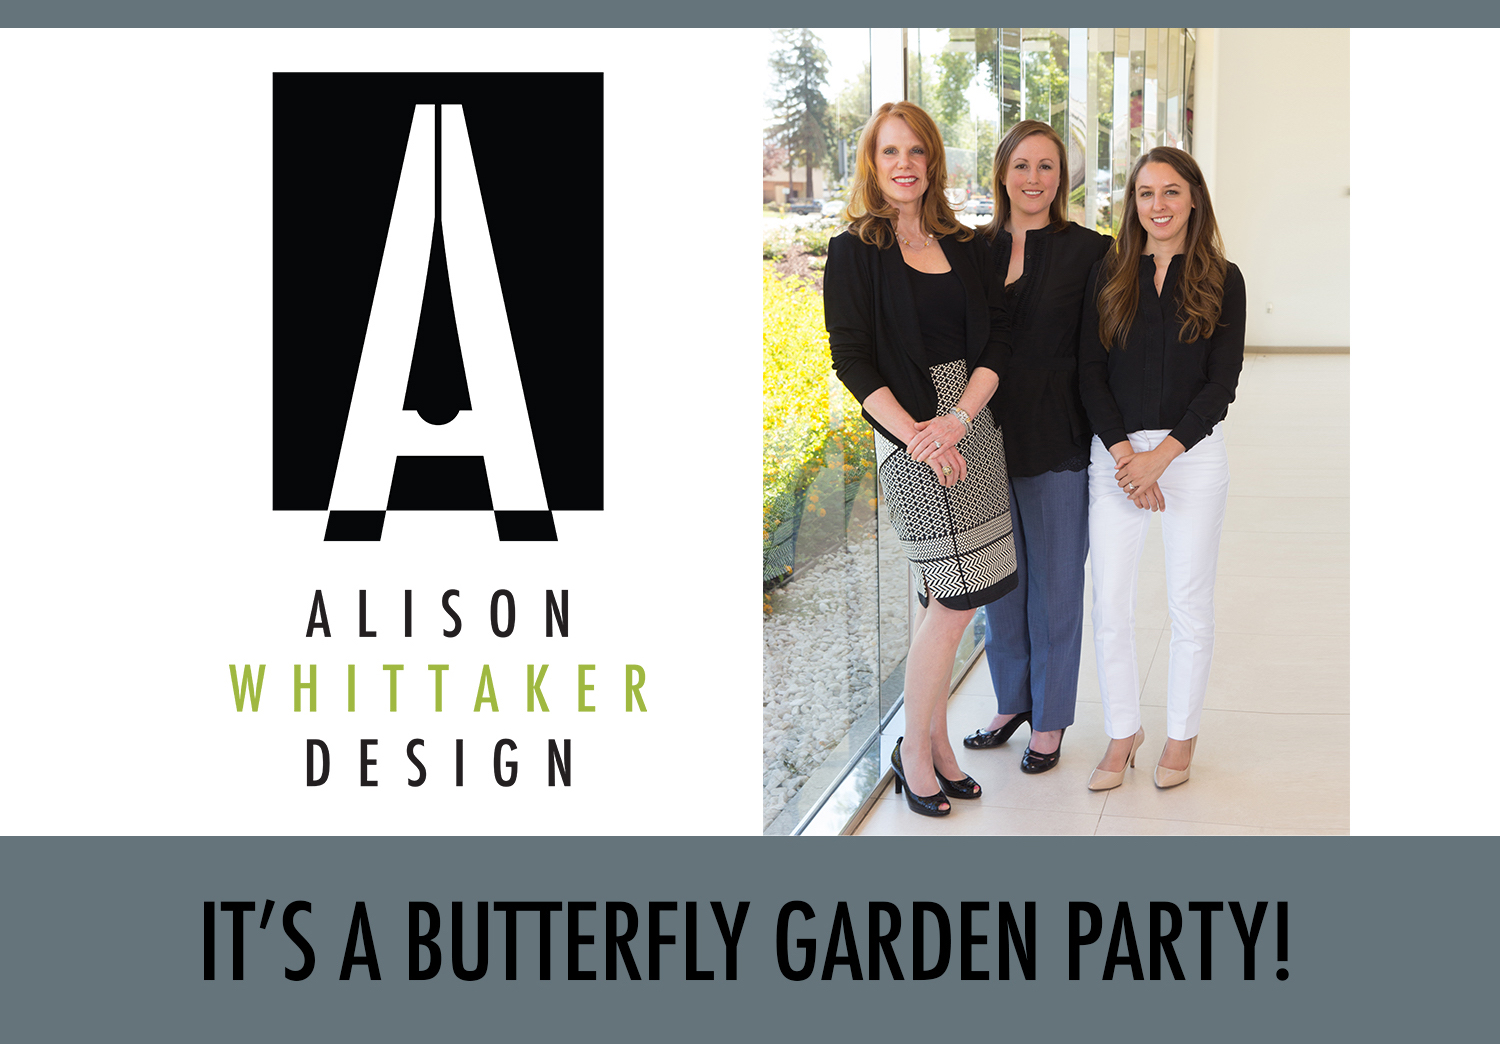 It's a Butterfly Garden Party!